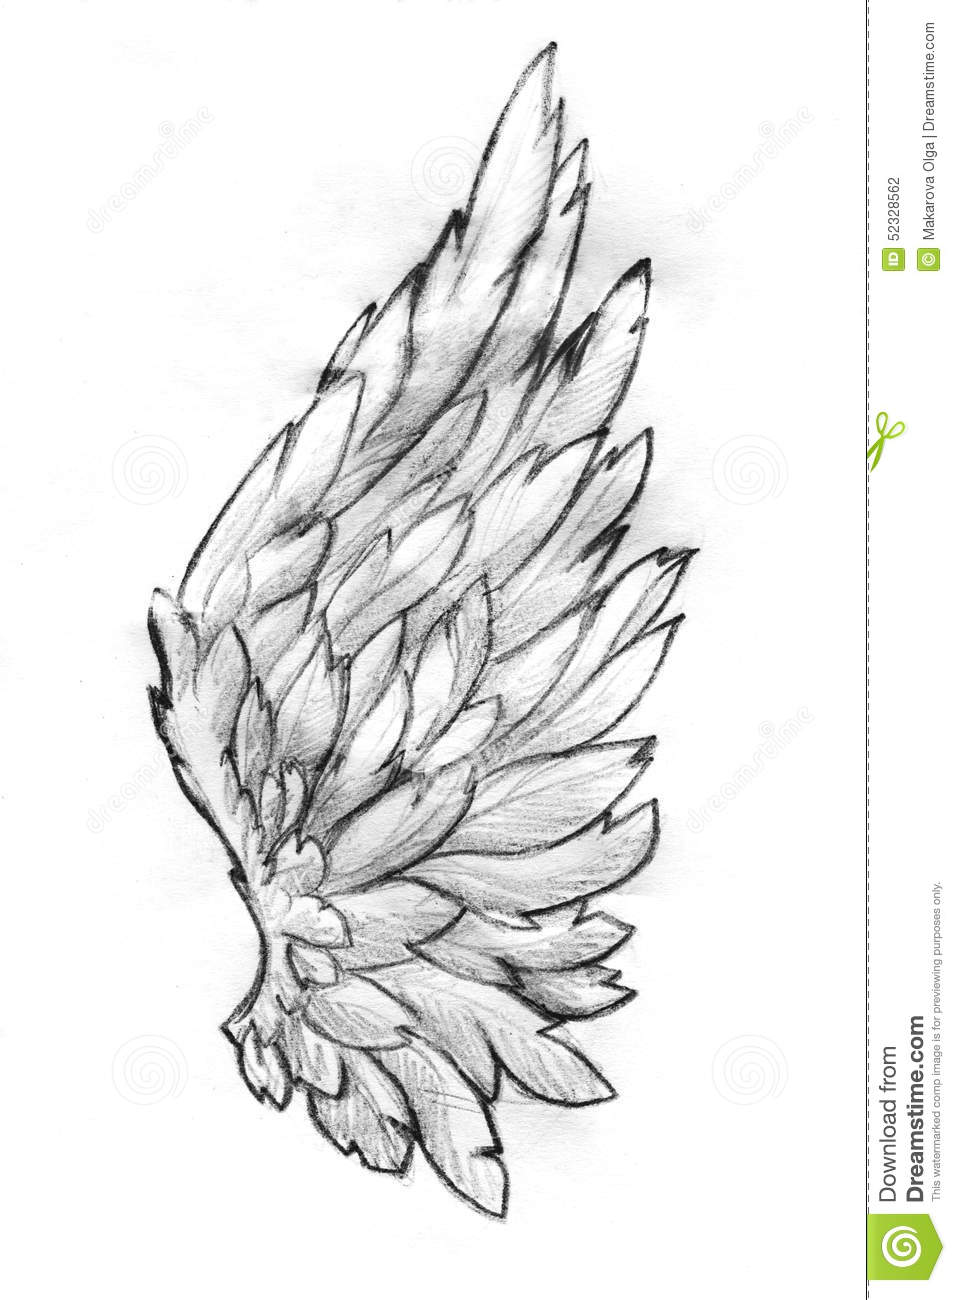 Wing pencil sketch